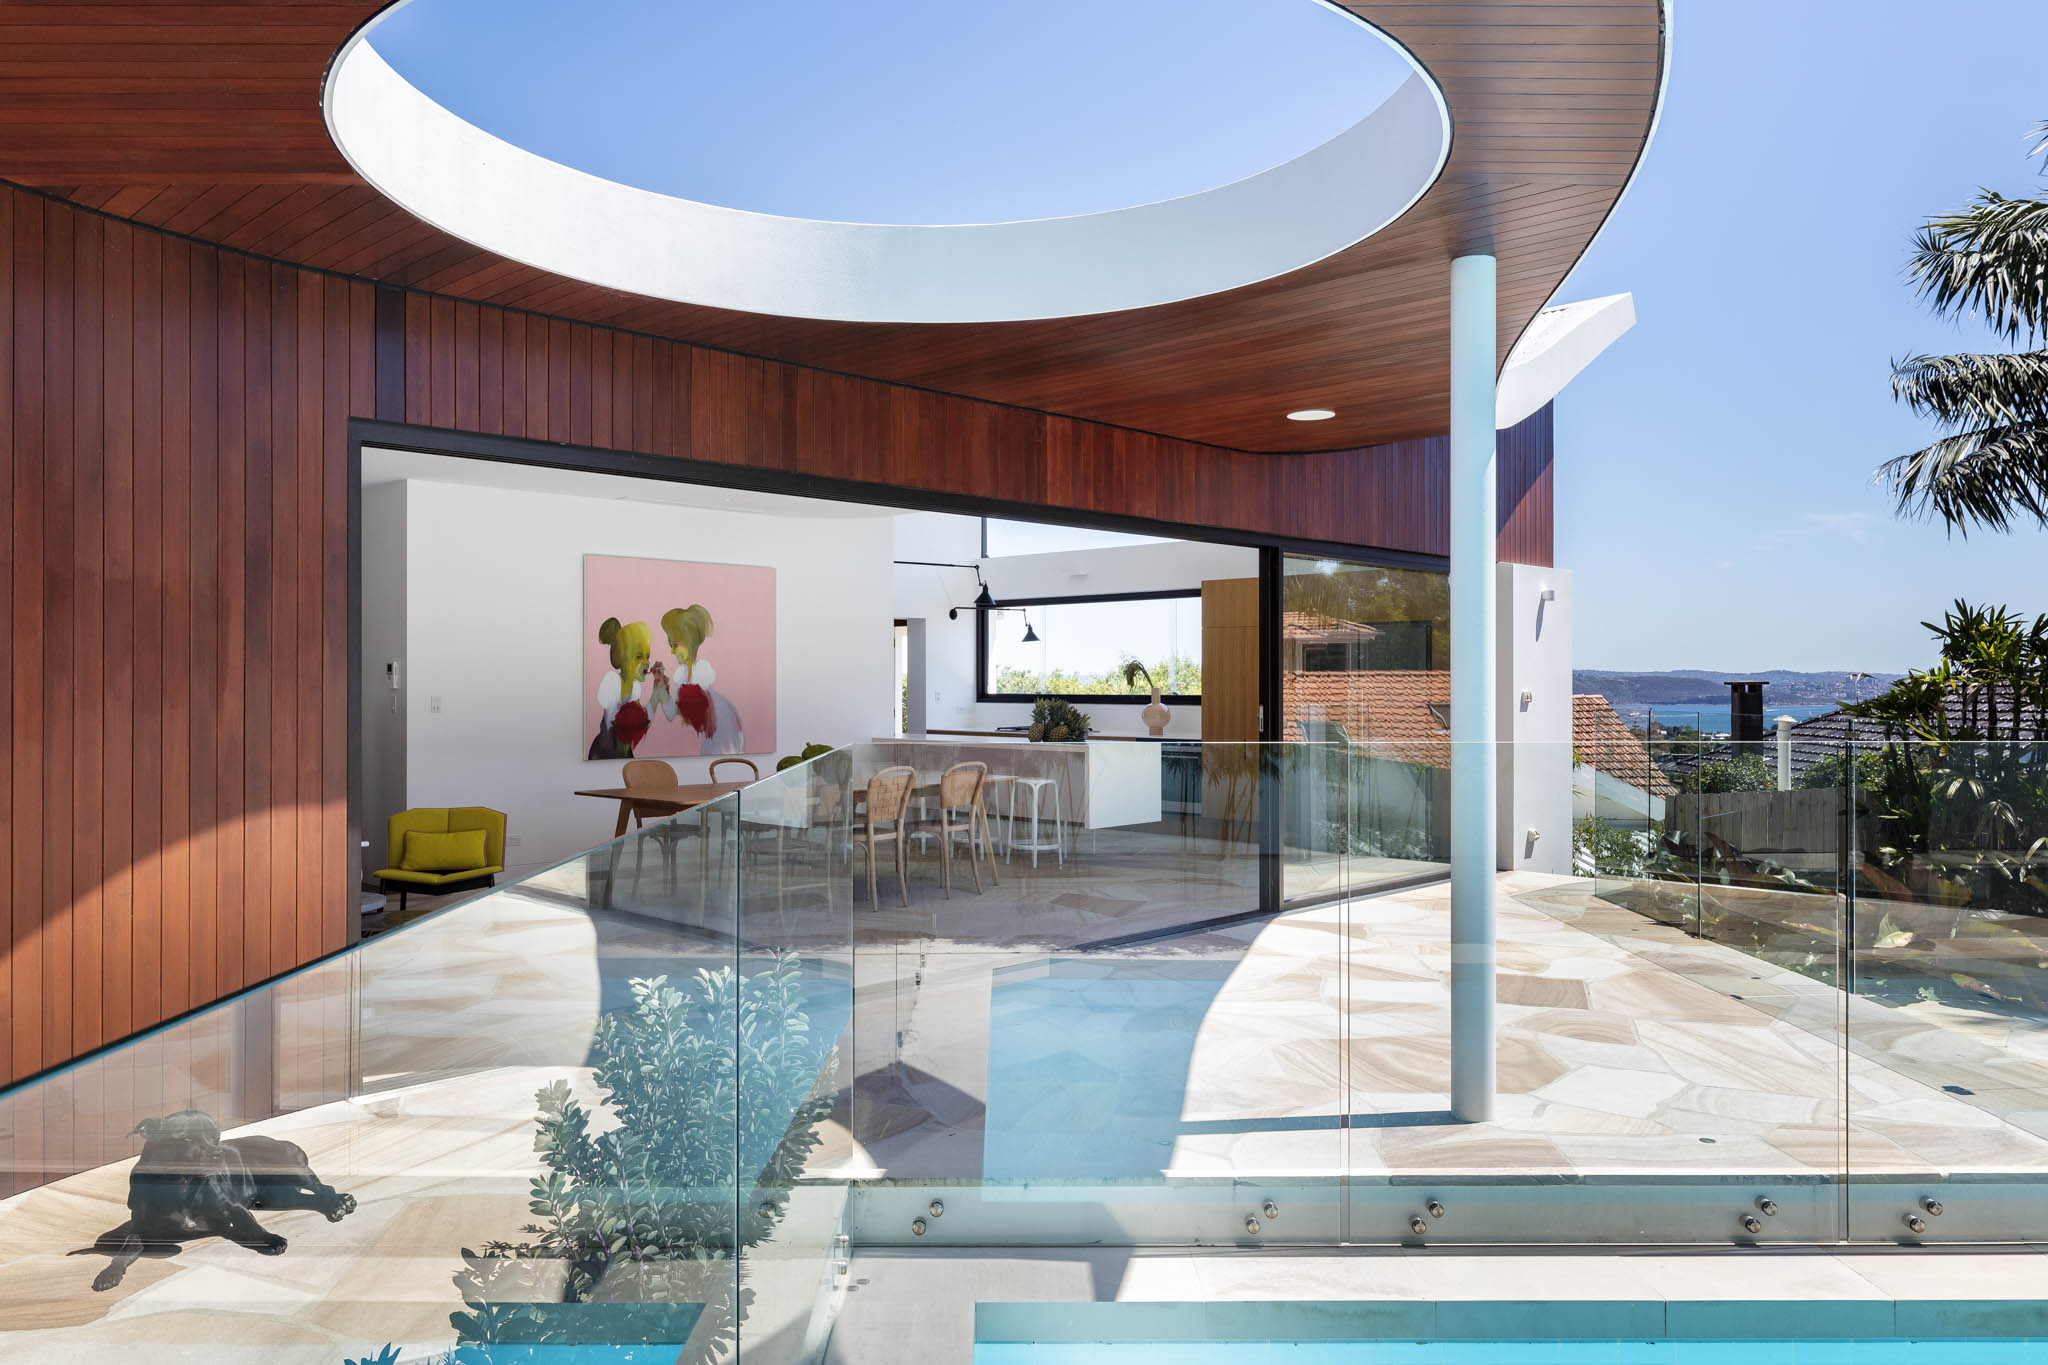 Vaucluse House by Nick Bell Architects